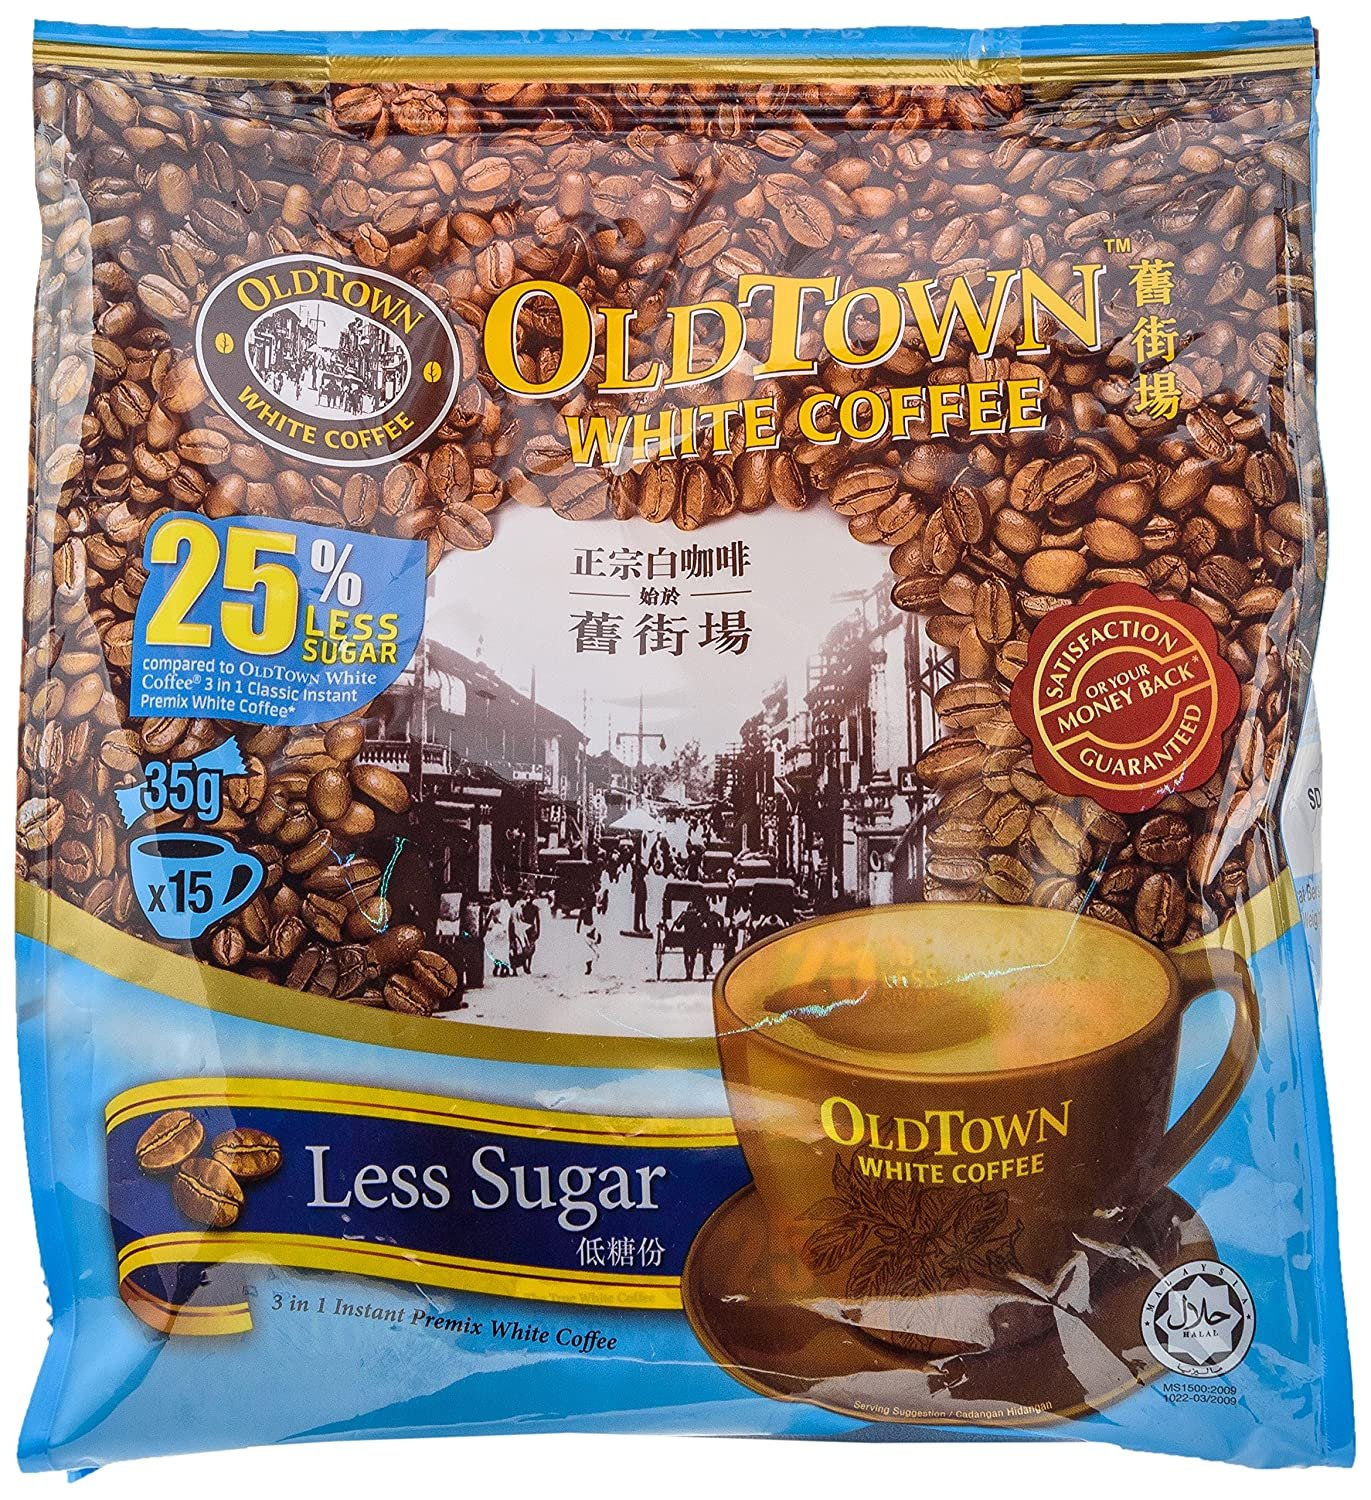 Old Town White Coffee 3 in 1 Instant Premix White Coffee Less Sugar 35g x 15 sachets